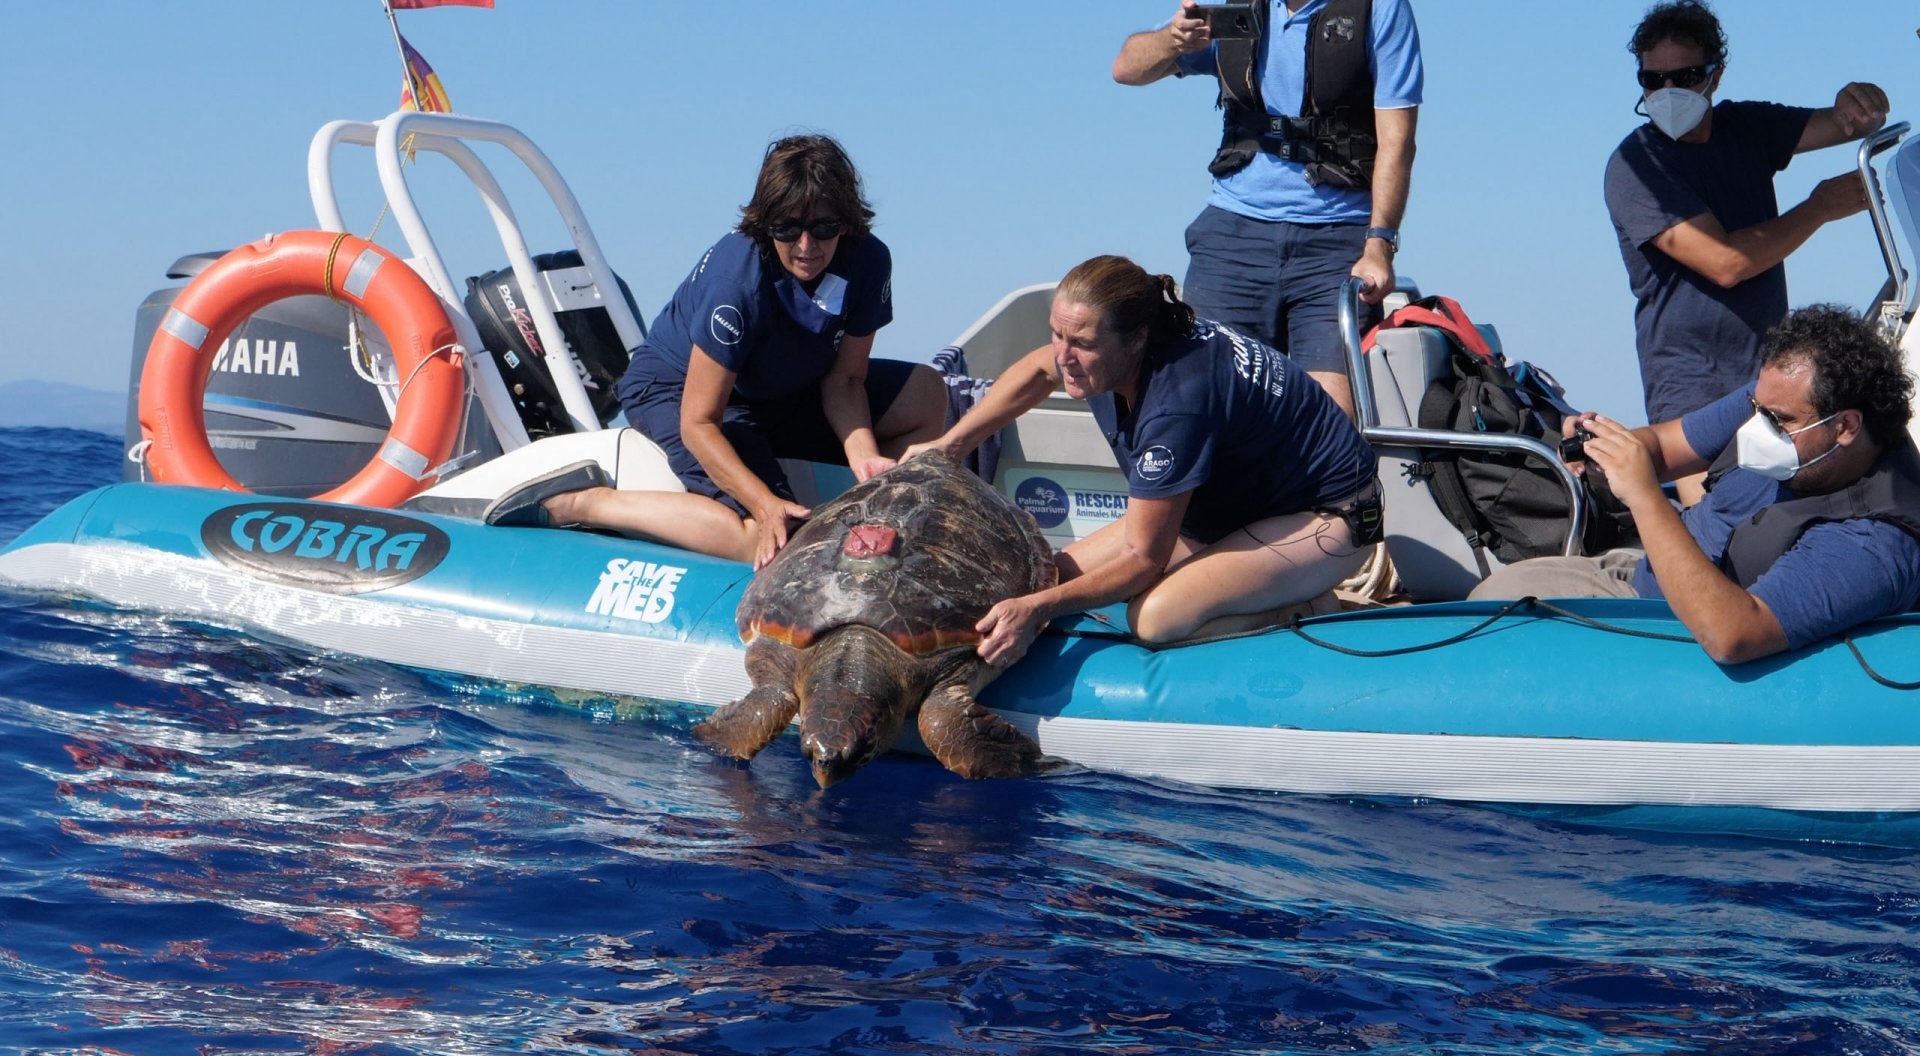 Thunderbird was fitted with a satellite tag and release after being recovered © Save the Med Foundation